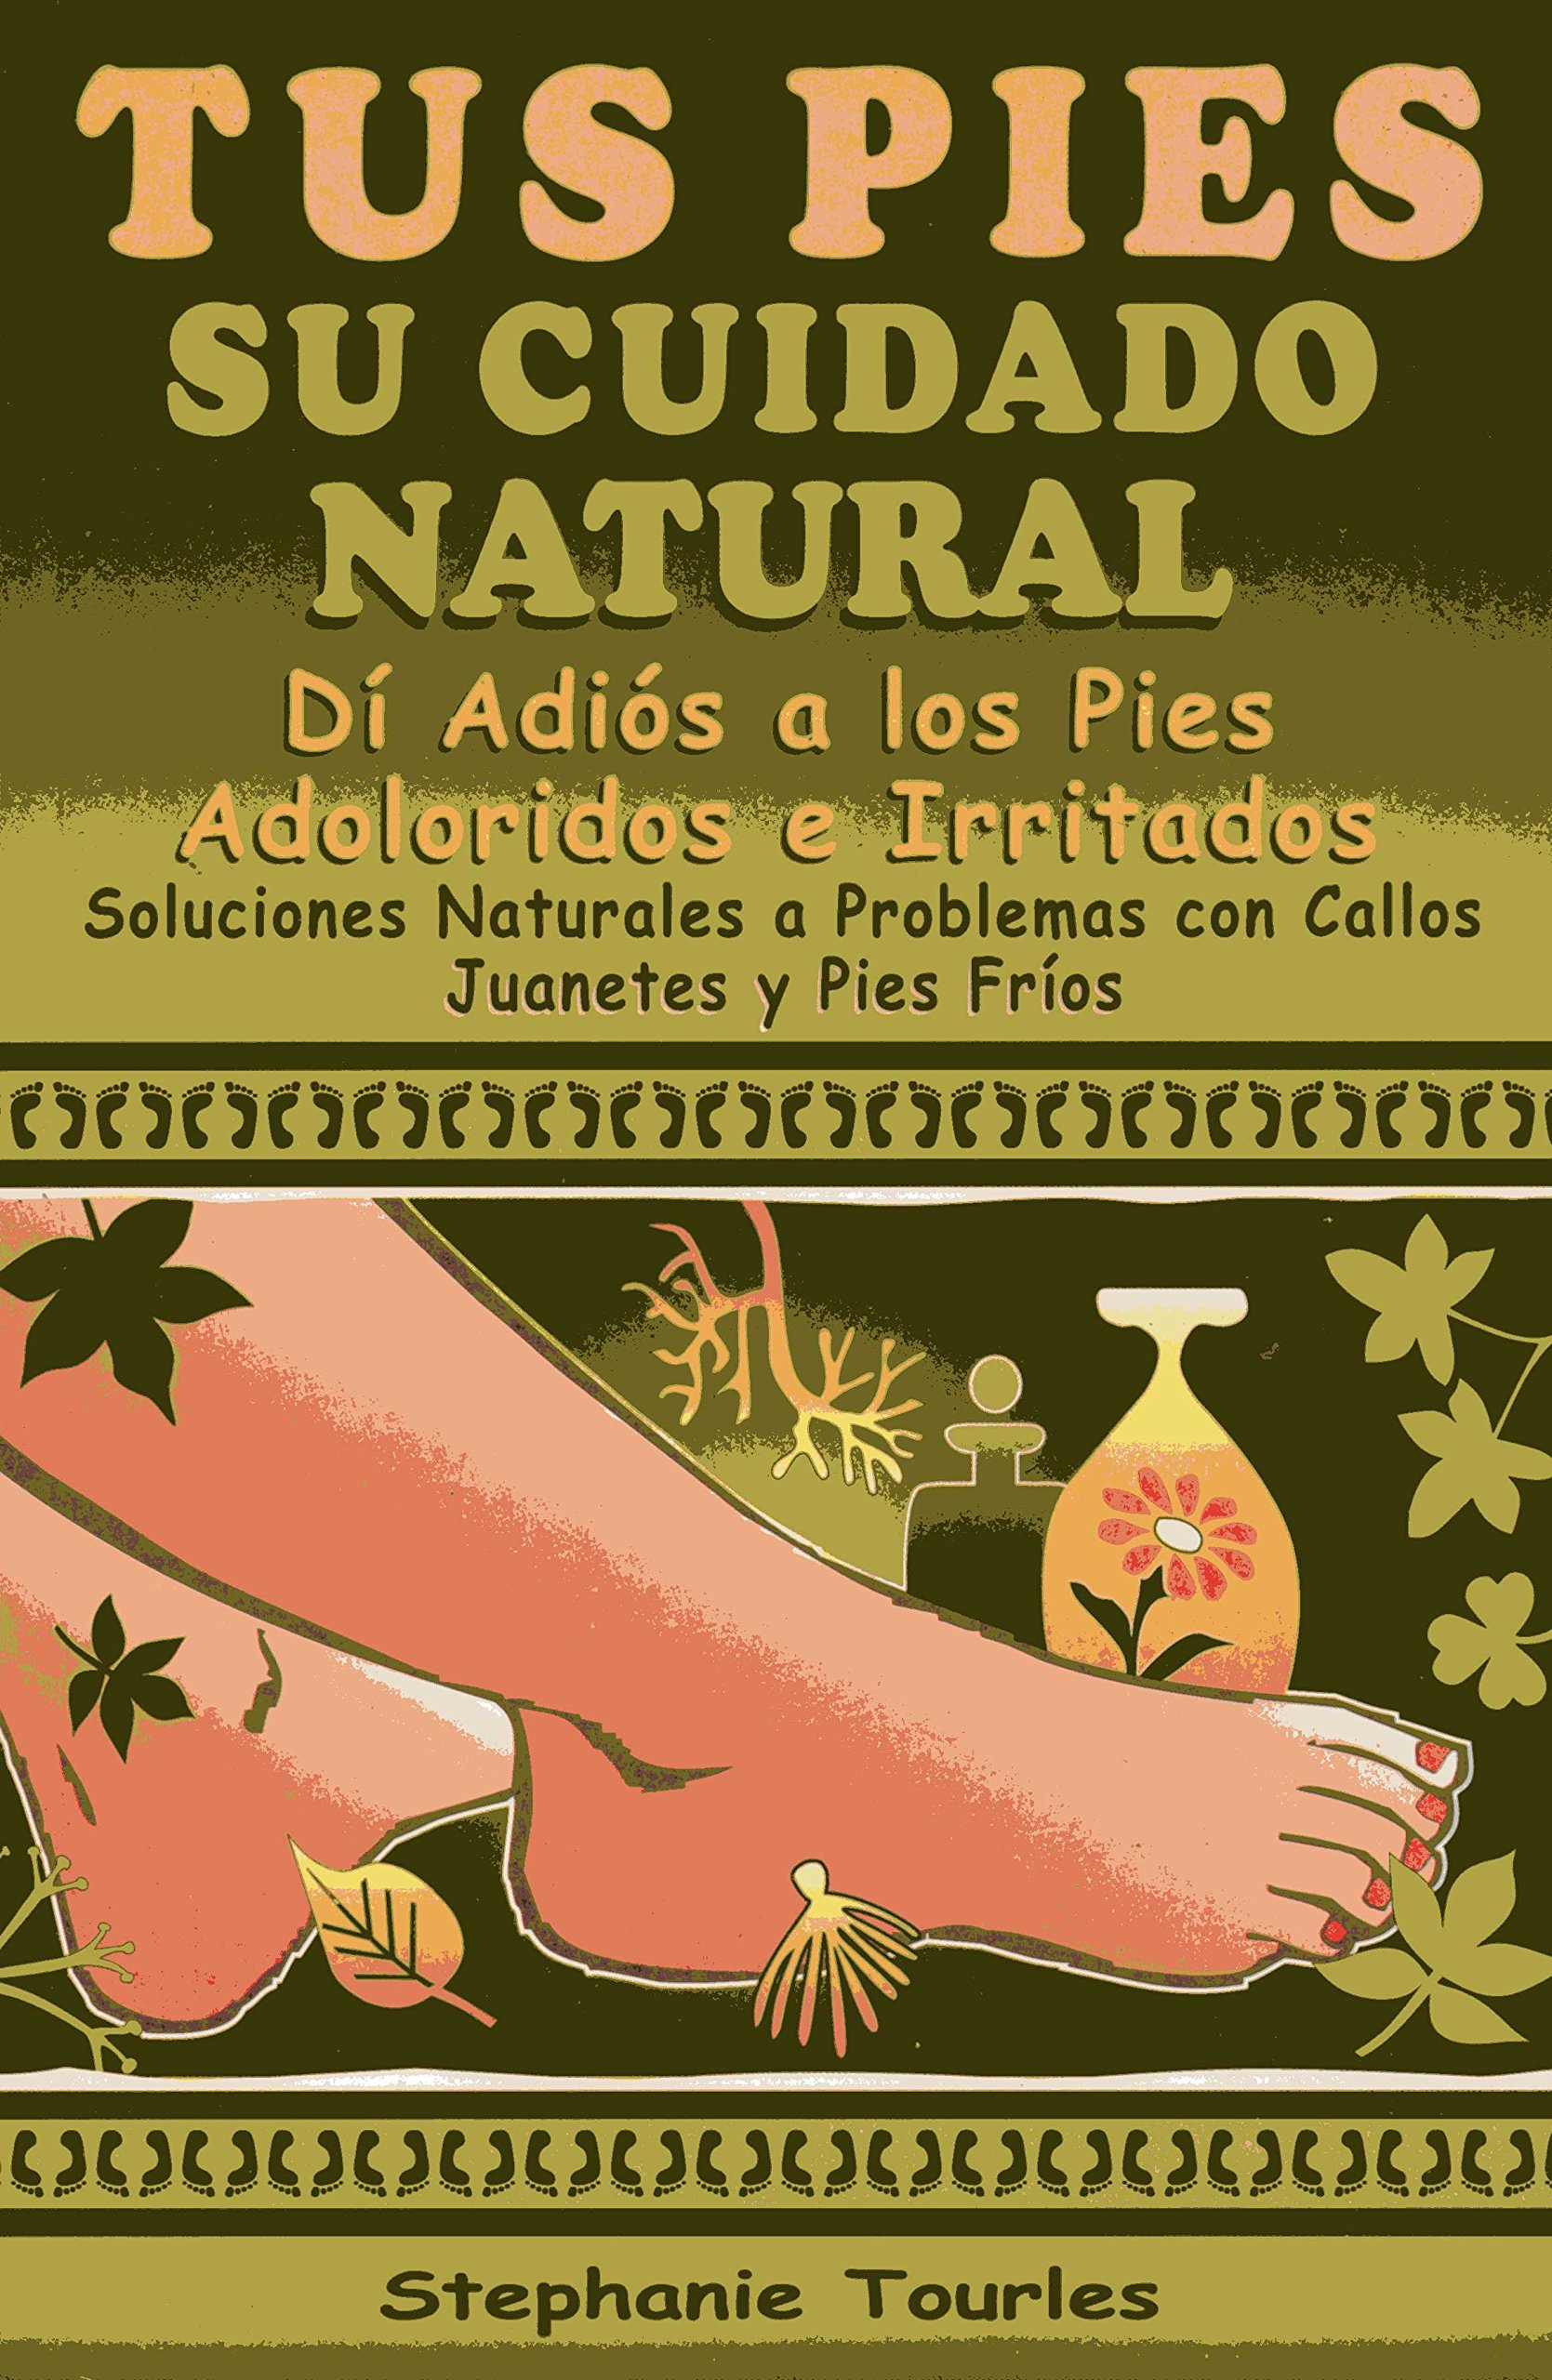 Tus Pies Su Cuidado Natural (Spanish Edition) (Spanish) Paperback – June 1, 2001